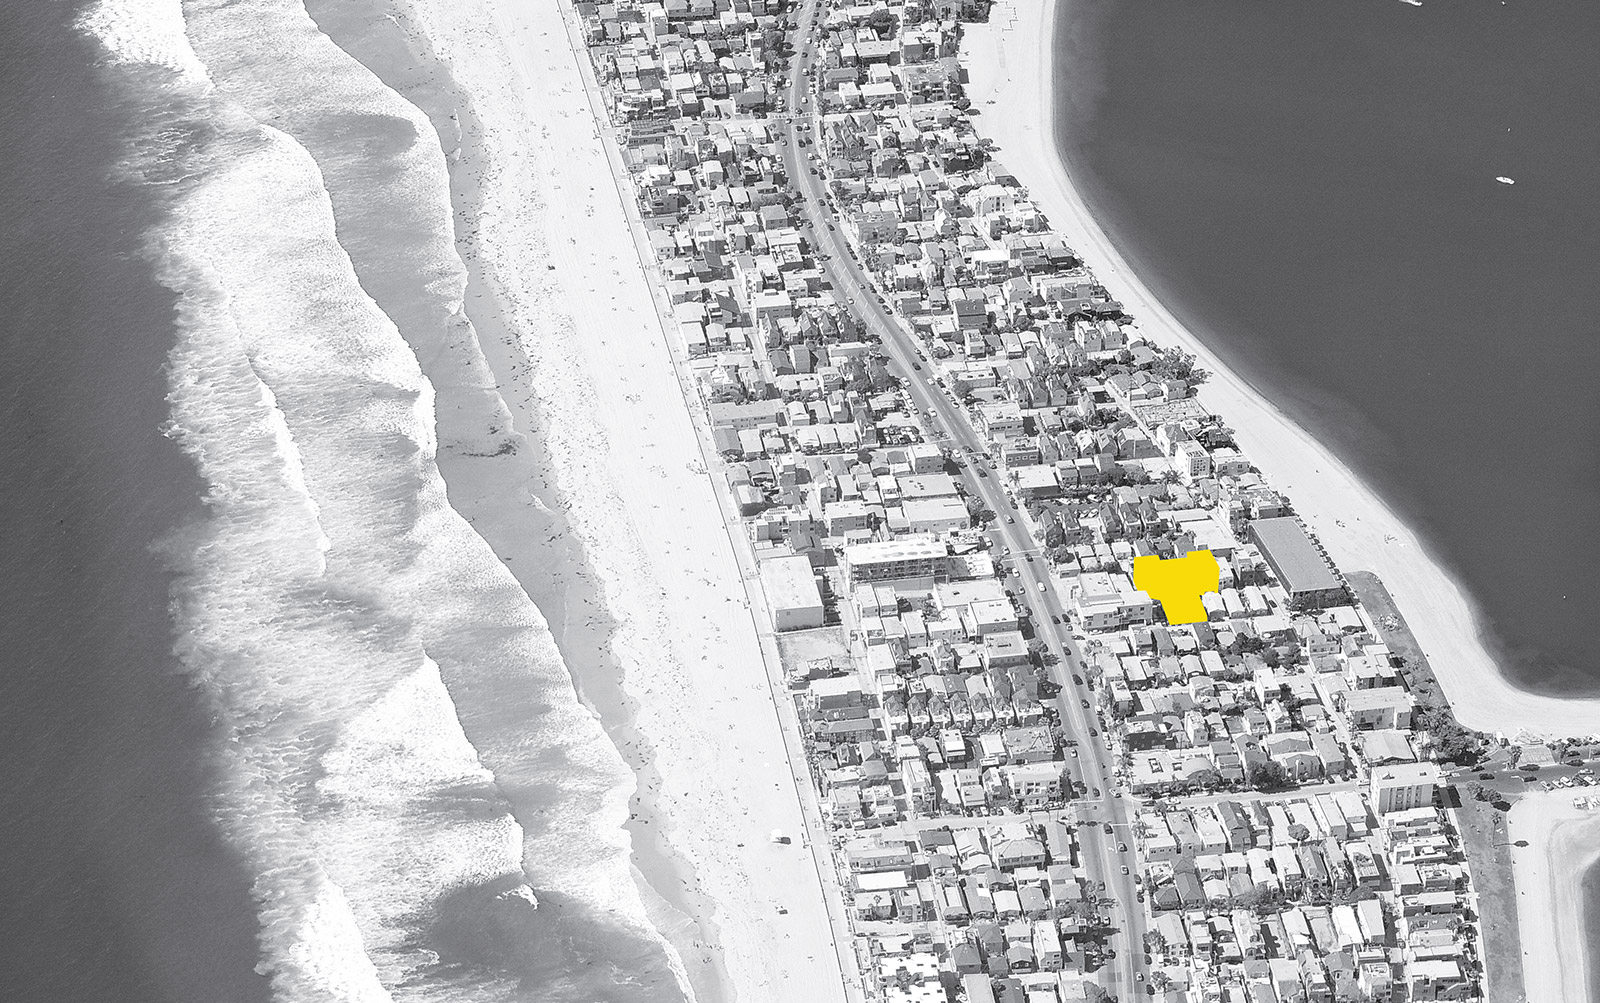 Aerial photo showing the infill site used for QTCT in relation to the beach and the bay along Mission Beach, San Diego